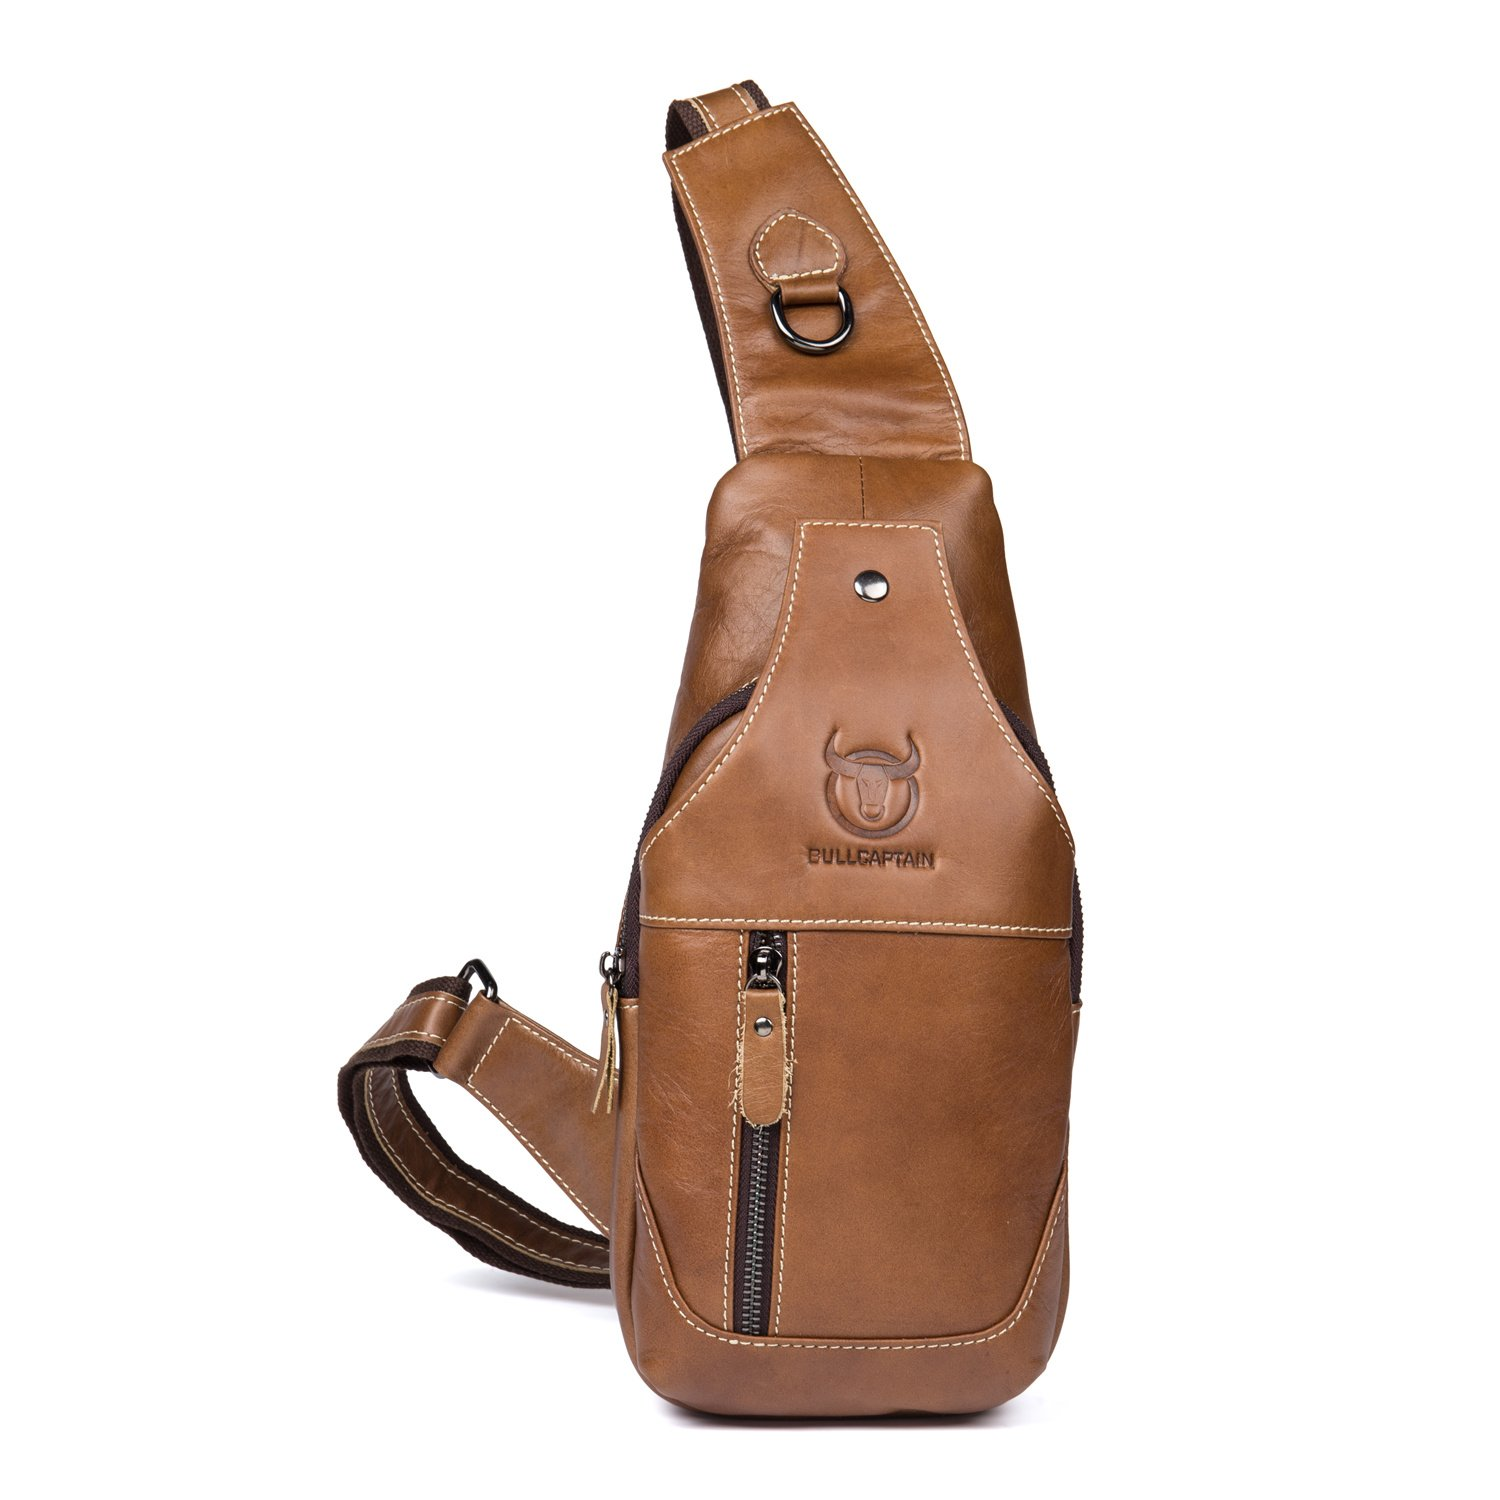 Bull Captain Sling Backpack Genuine Leather Chest Shoulder Bags Casual Crossbody Bag Travel Hiking Daypacks 019 (Yellow Brown)